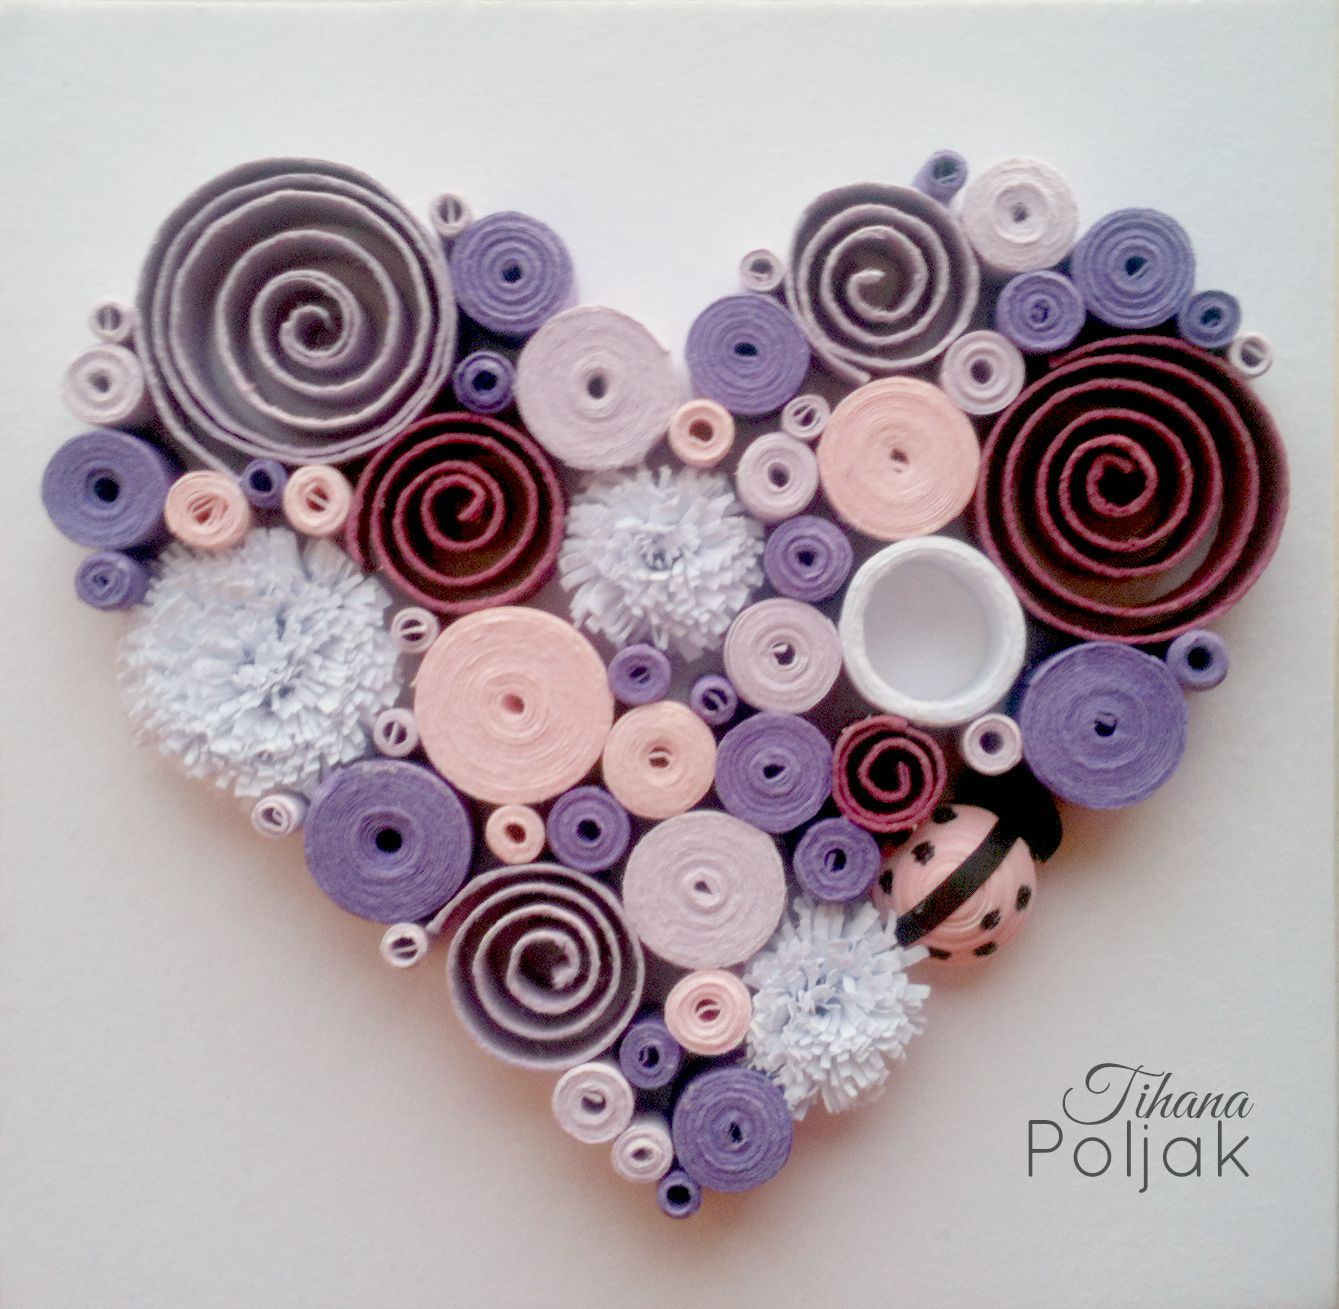 Quilled heart quilling purple rose heart love quilling for Quilling heart designs